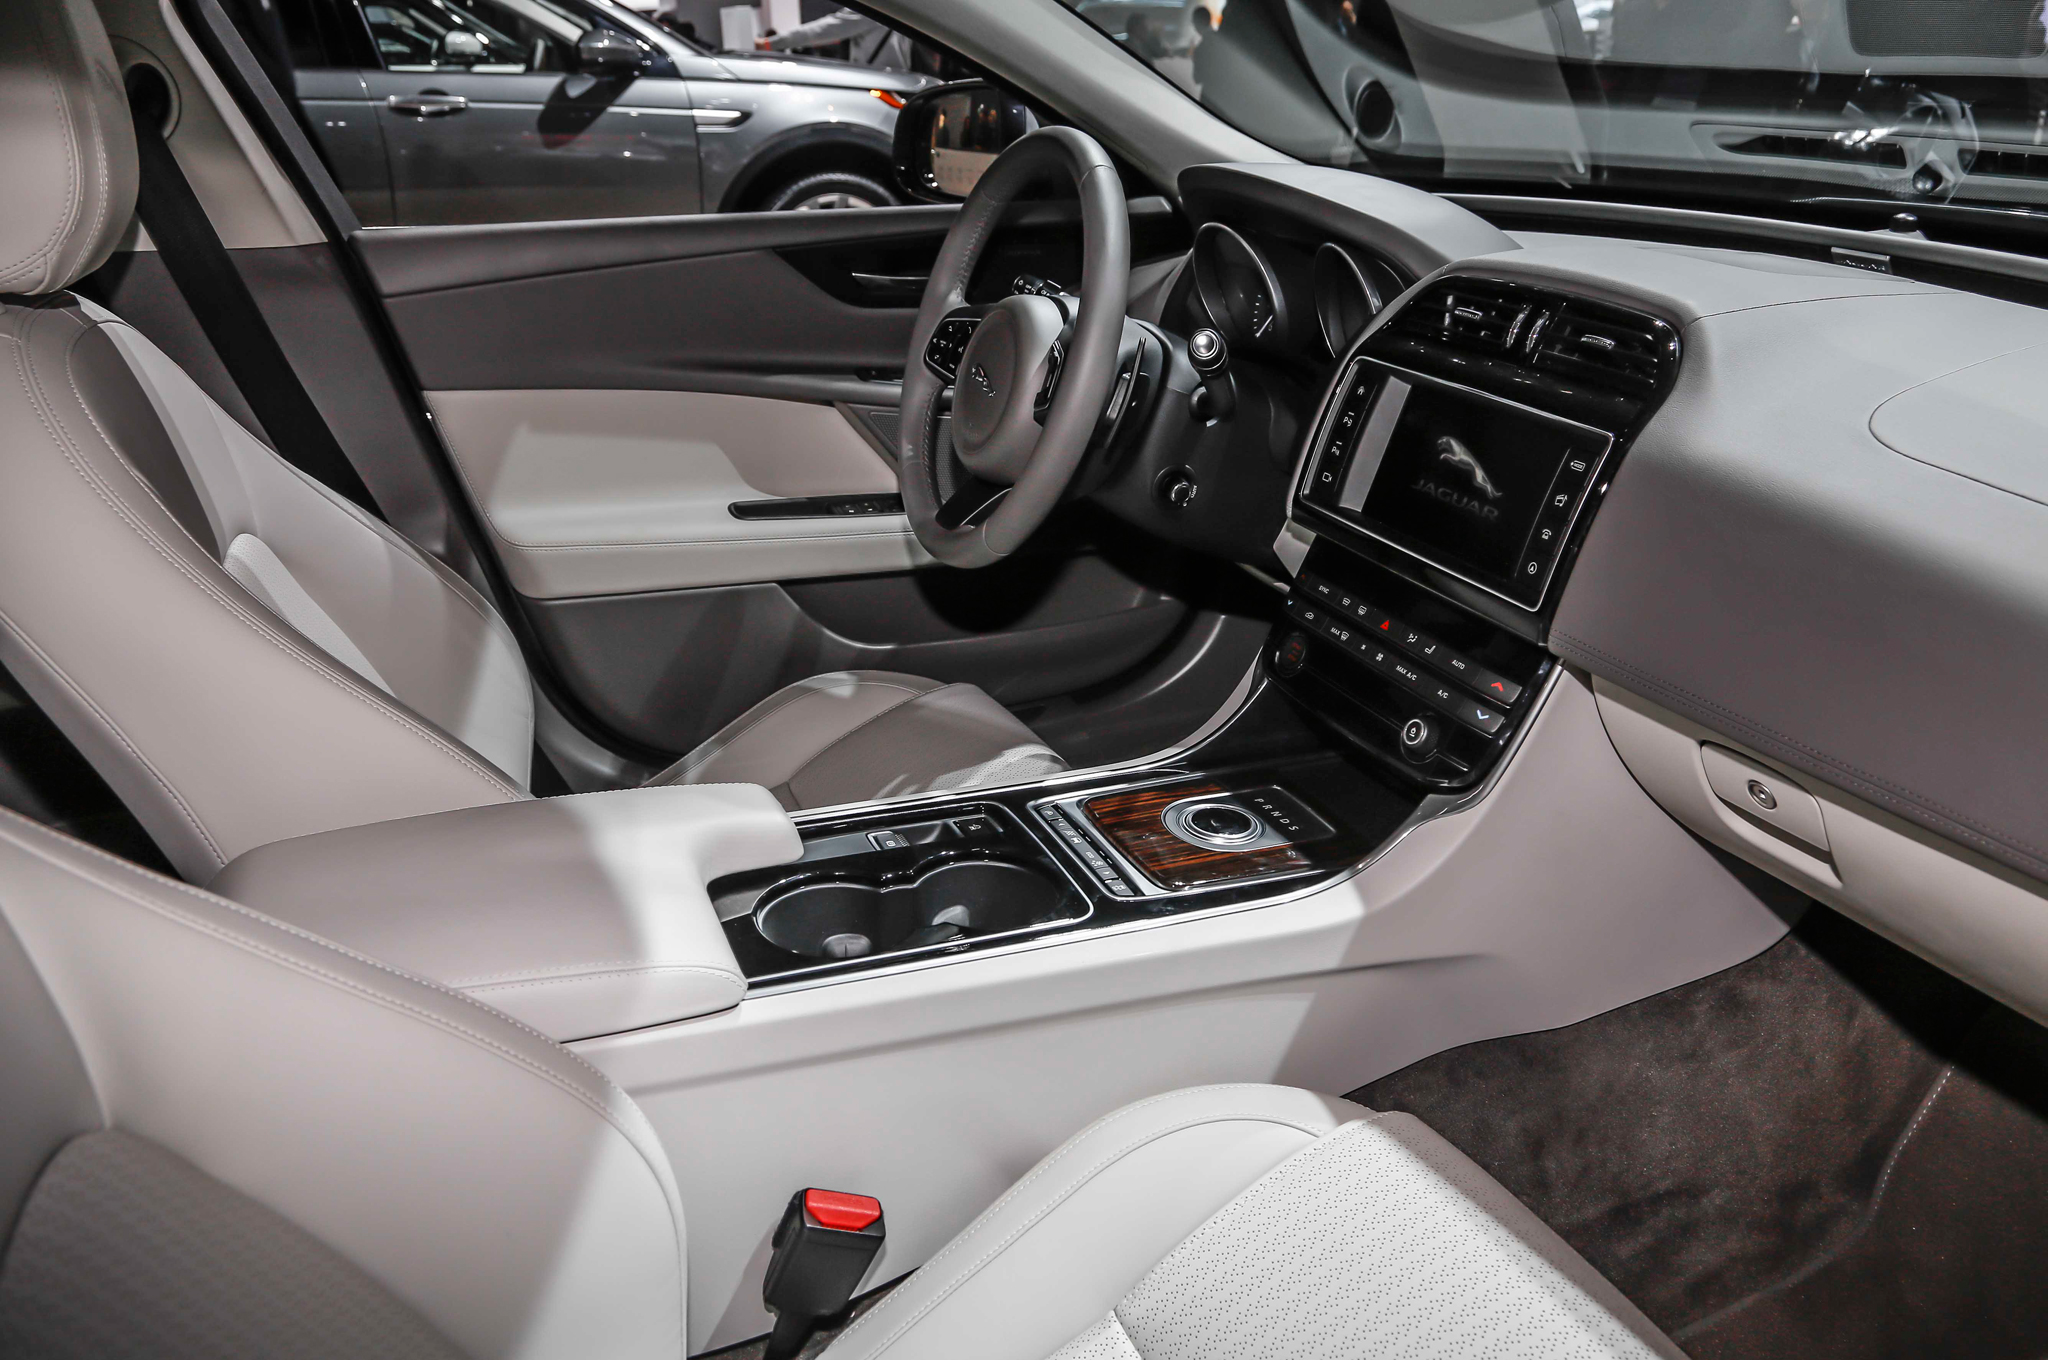 2016 Jaguar Xe Interior Cockpit Preview (View 3 of 12)